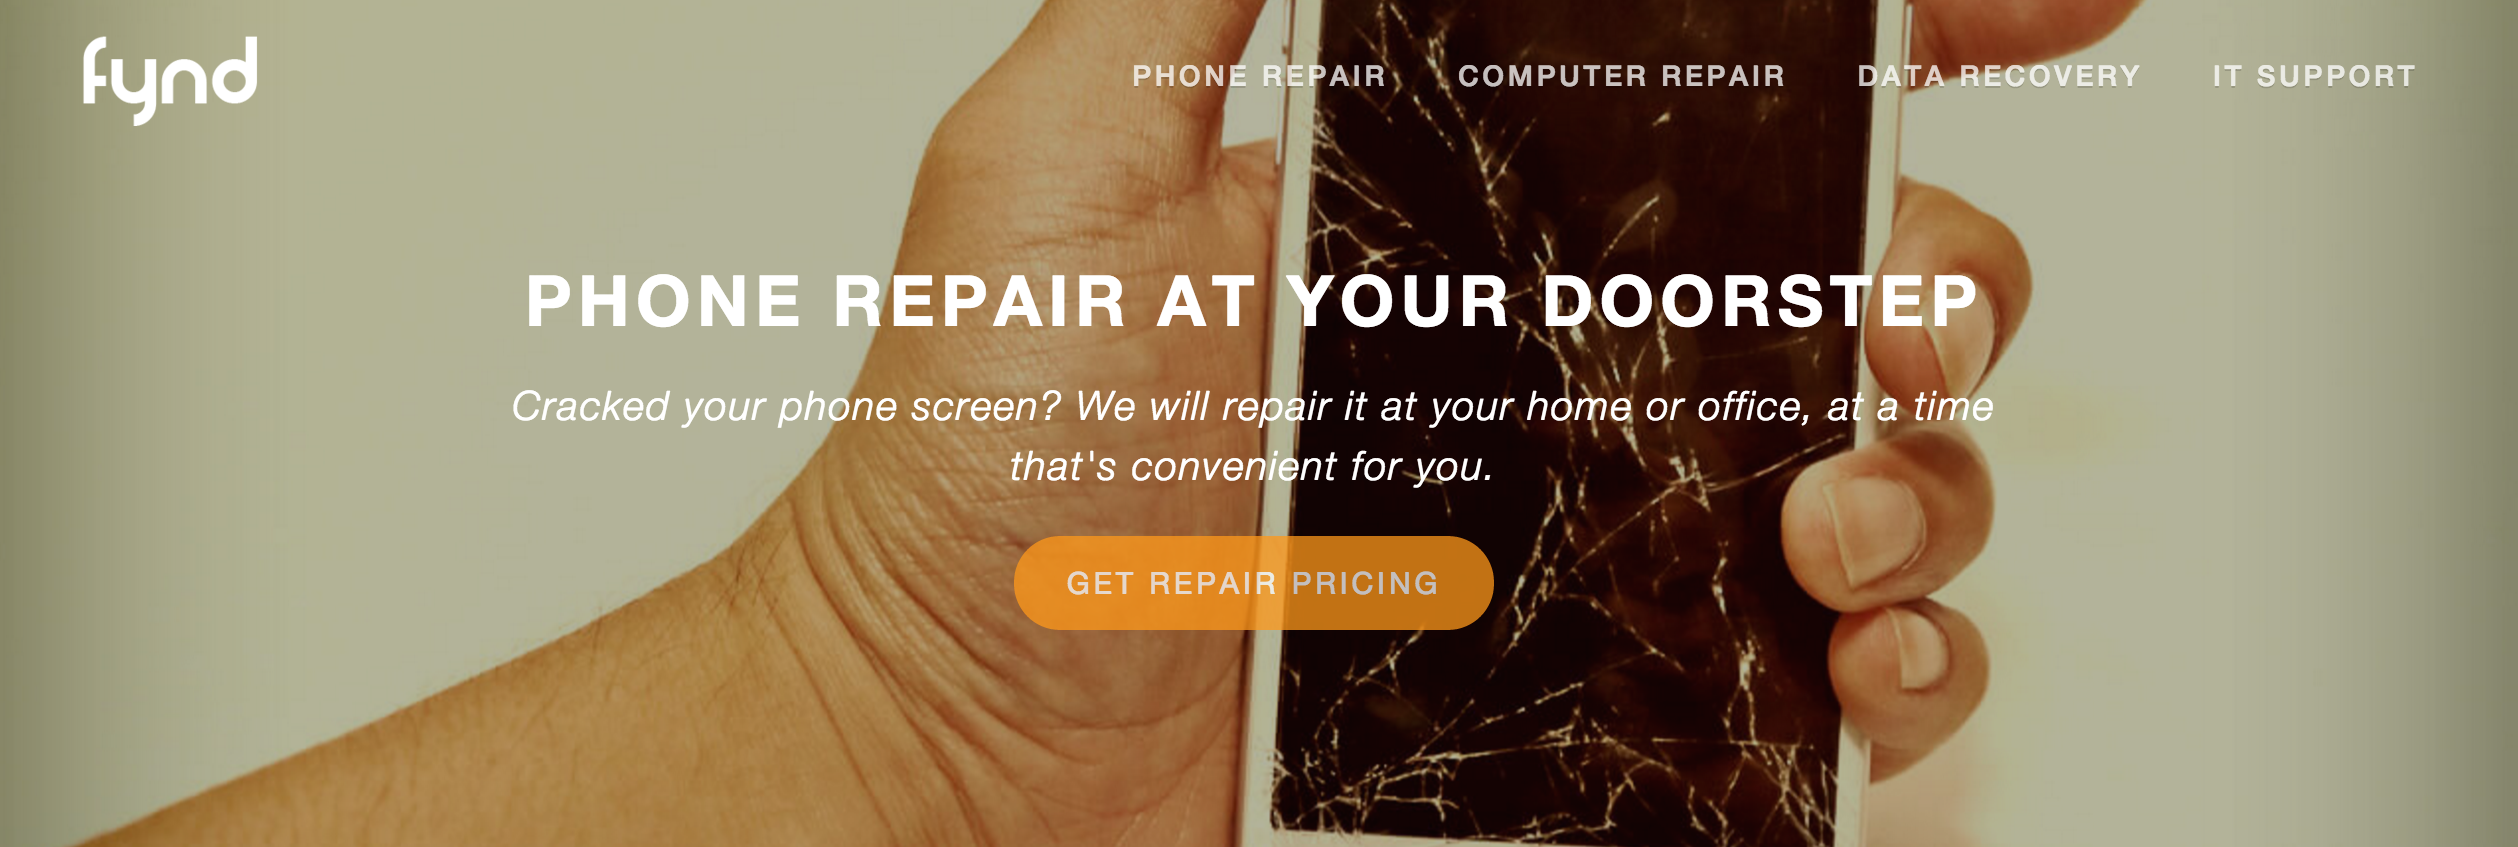 fynd phone repair promo code